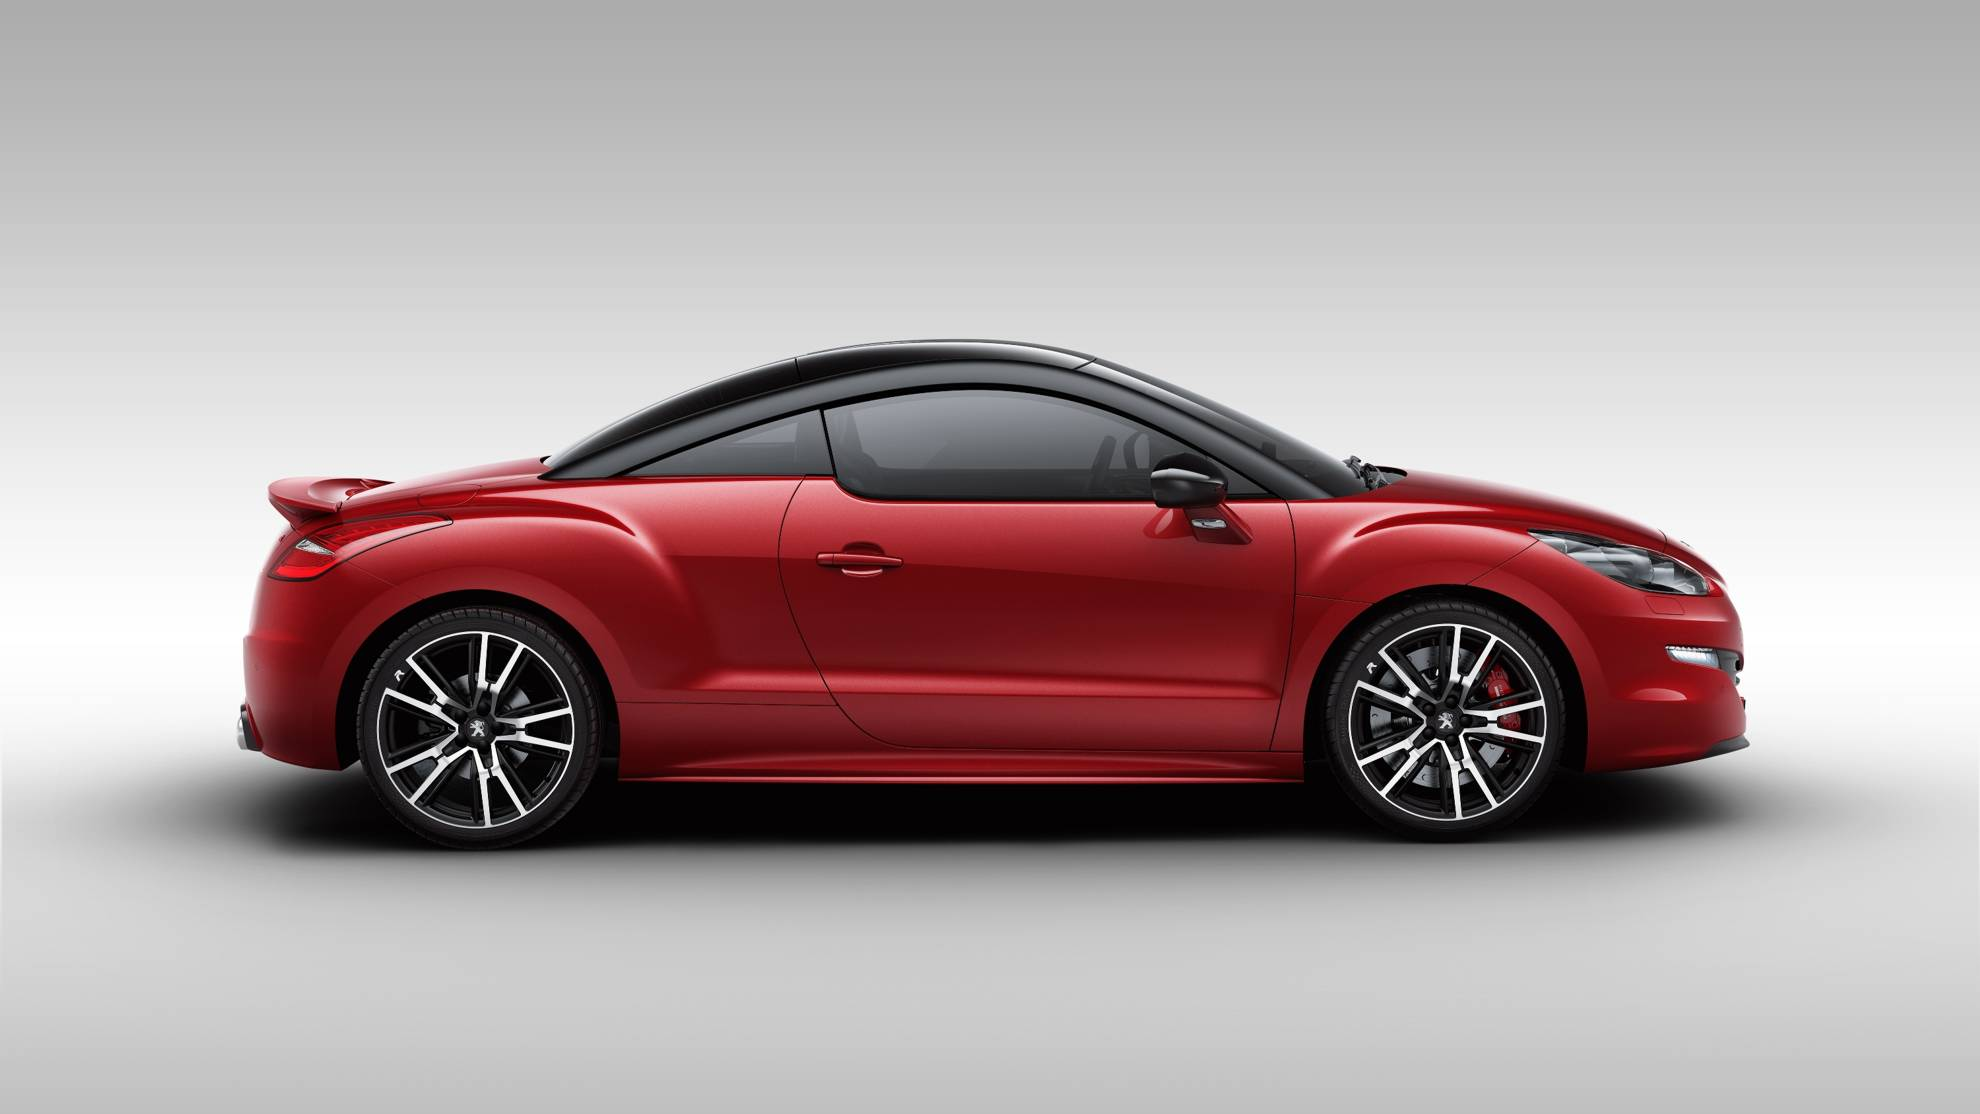 peugeot rcz r performance and efficiency from peugeot sport. Black Bedroom Furniture Sets. Home Design Ideas